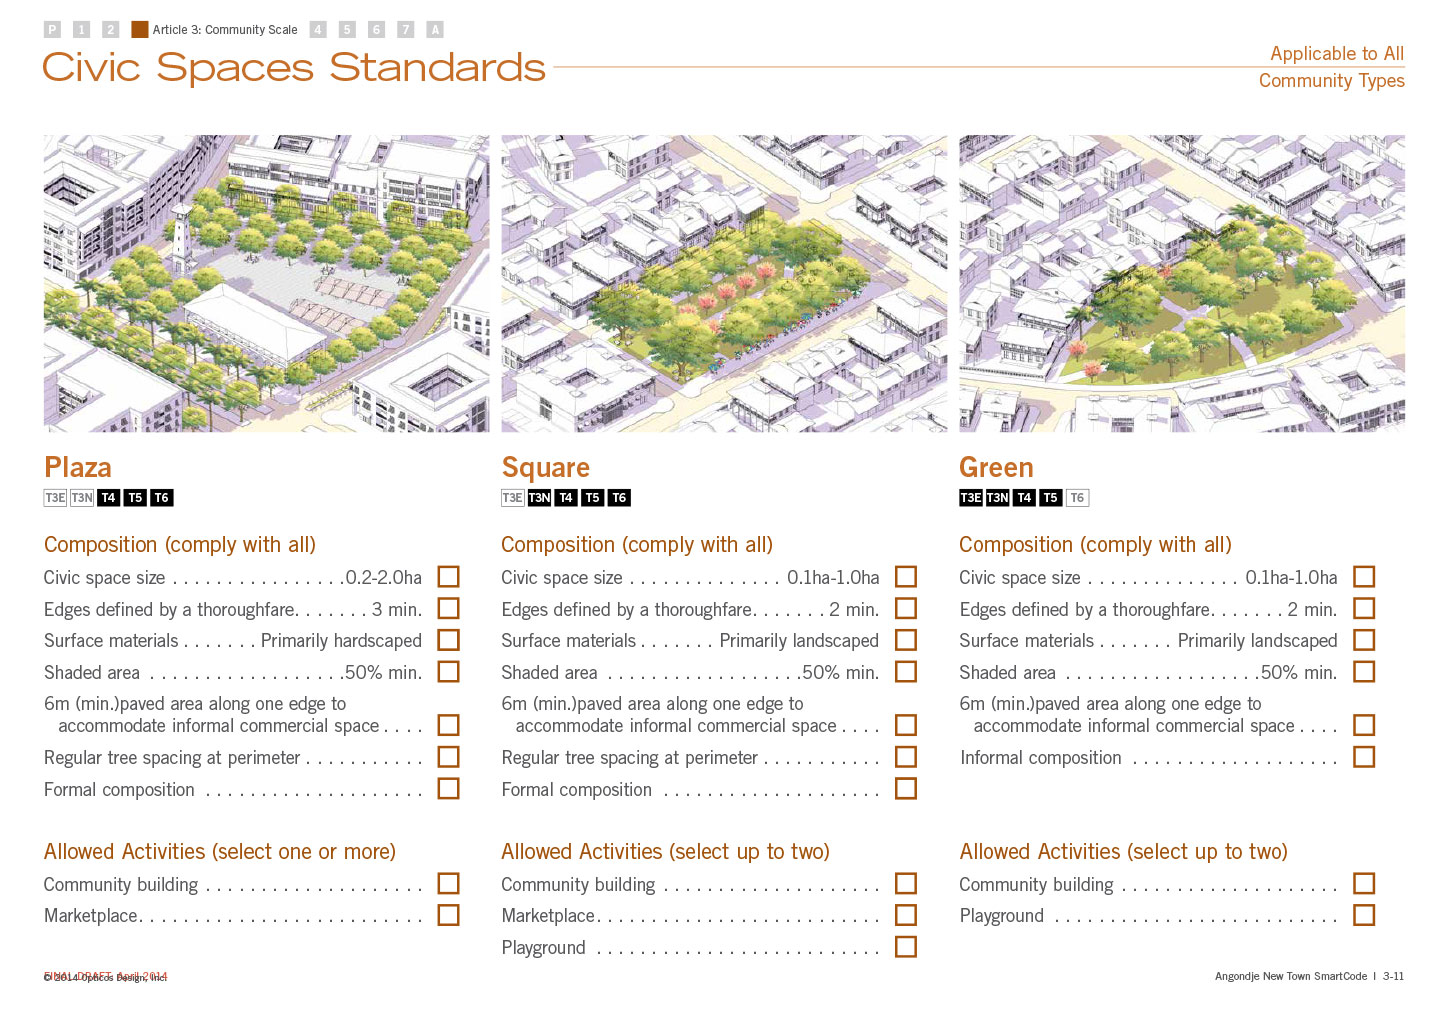 Civic Space Standards